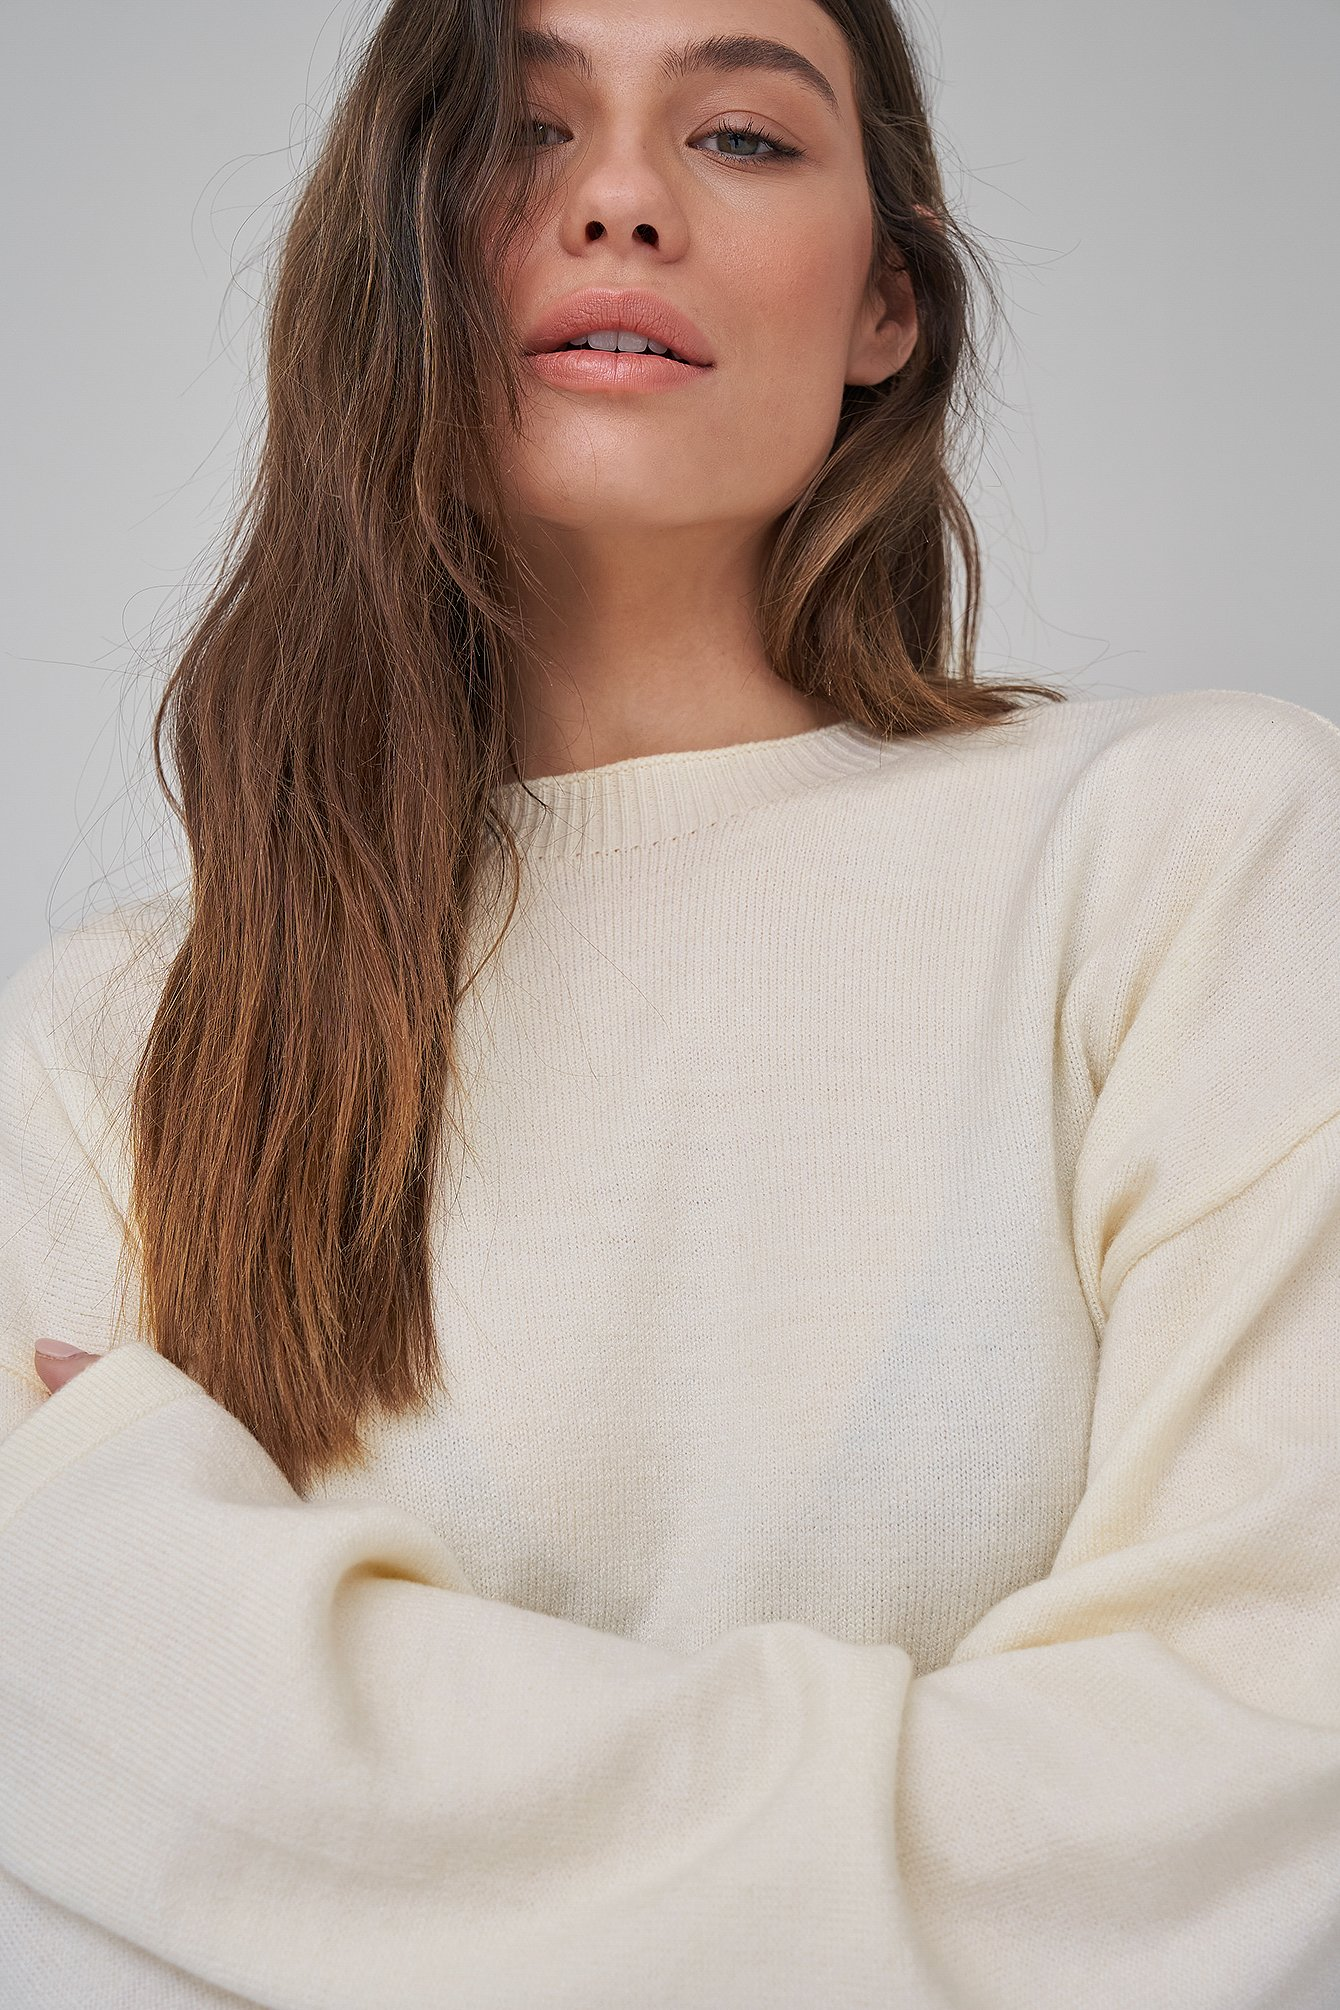 Antique White Light Knit Dropped Shoulder Sweater